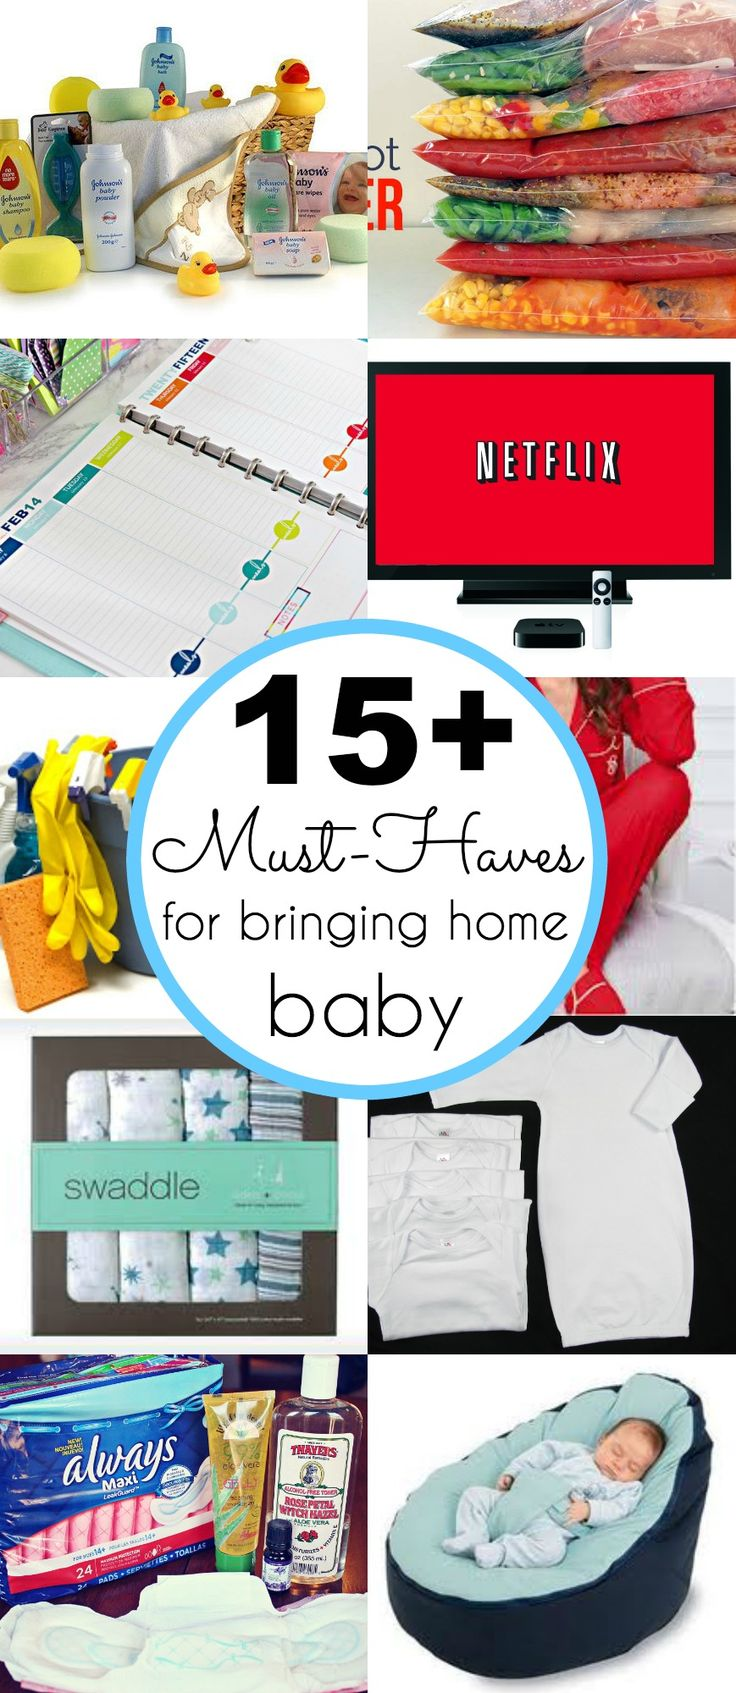 15+ Must-haves for bringing home baby - www.classyclutter.net